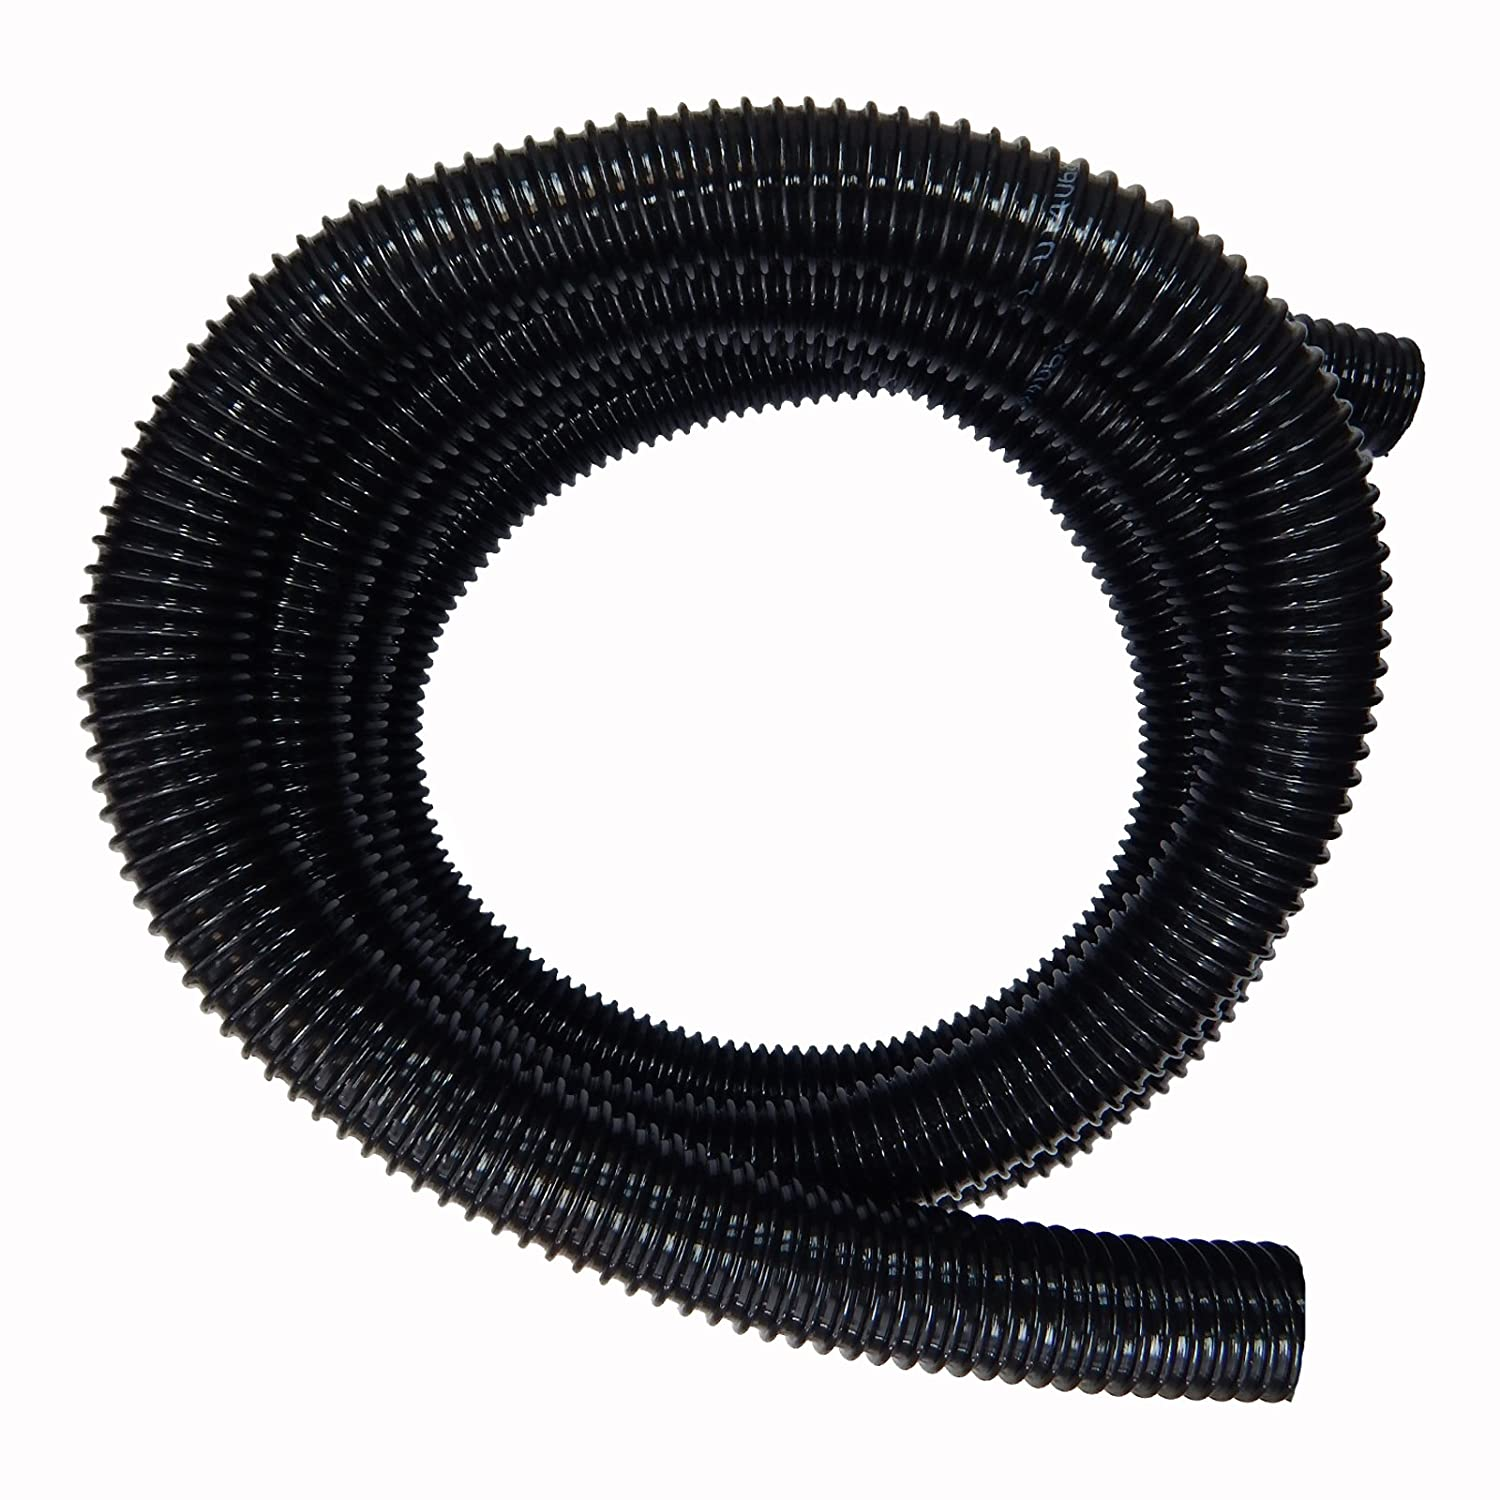 'Pond Hose Standard Easy To 32 mm (1 1/4) 30 m Roll Schlauch24